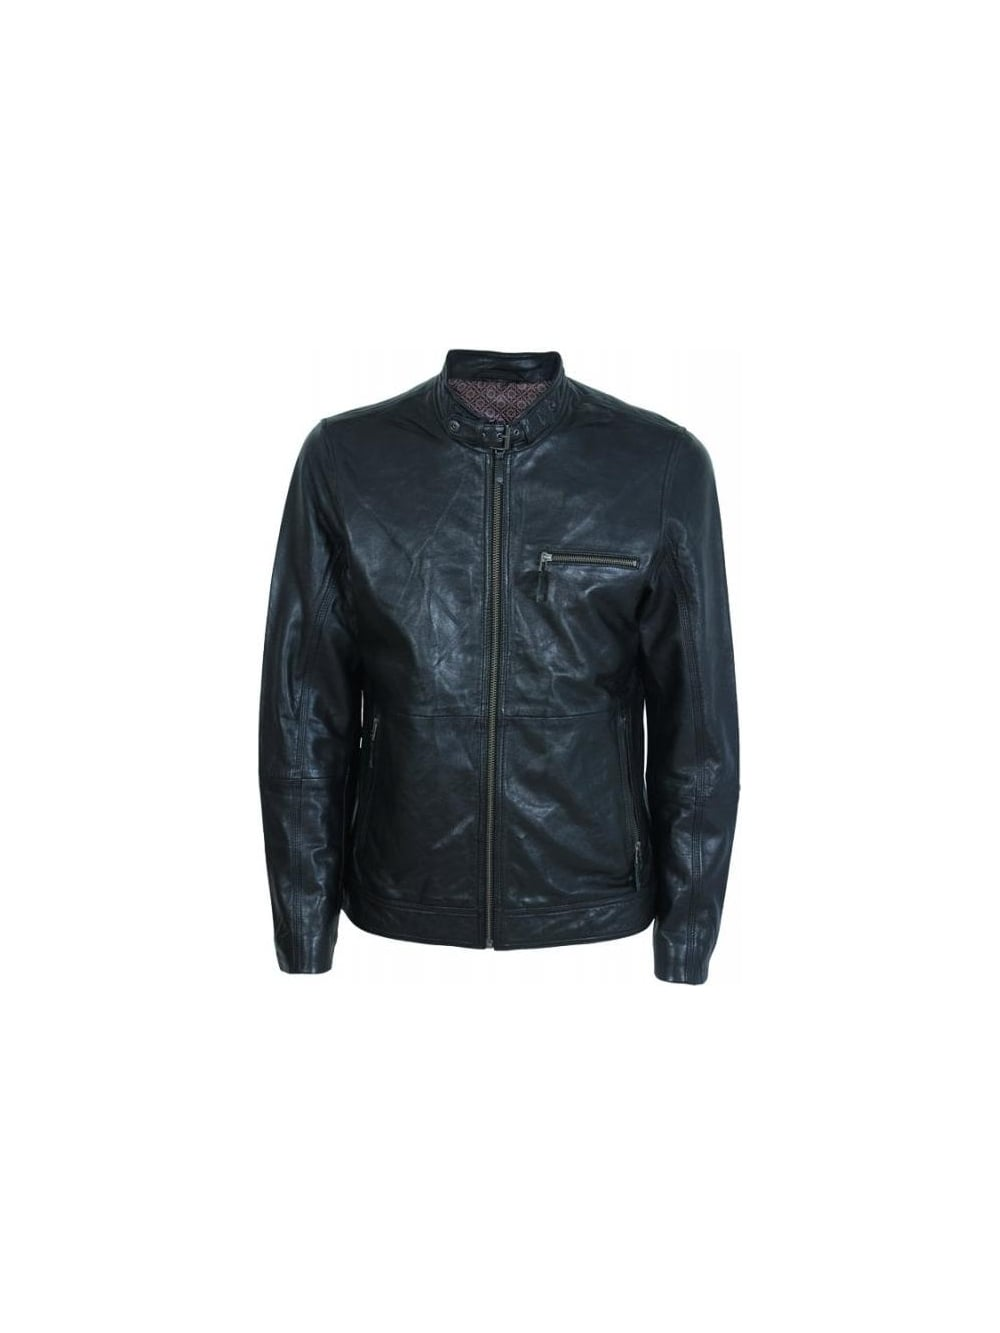 31642595f Ted Baker Visery 3 Pocket Leather Jacket in Black - Northern Threads